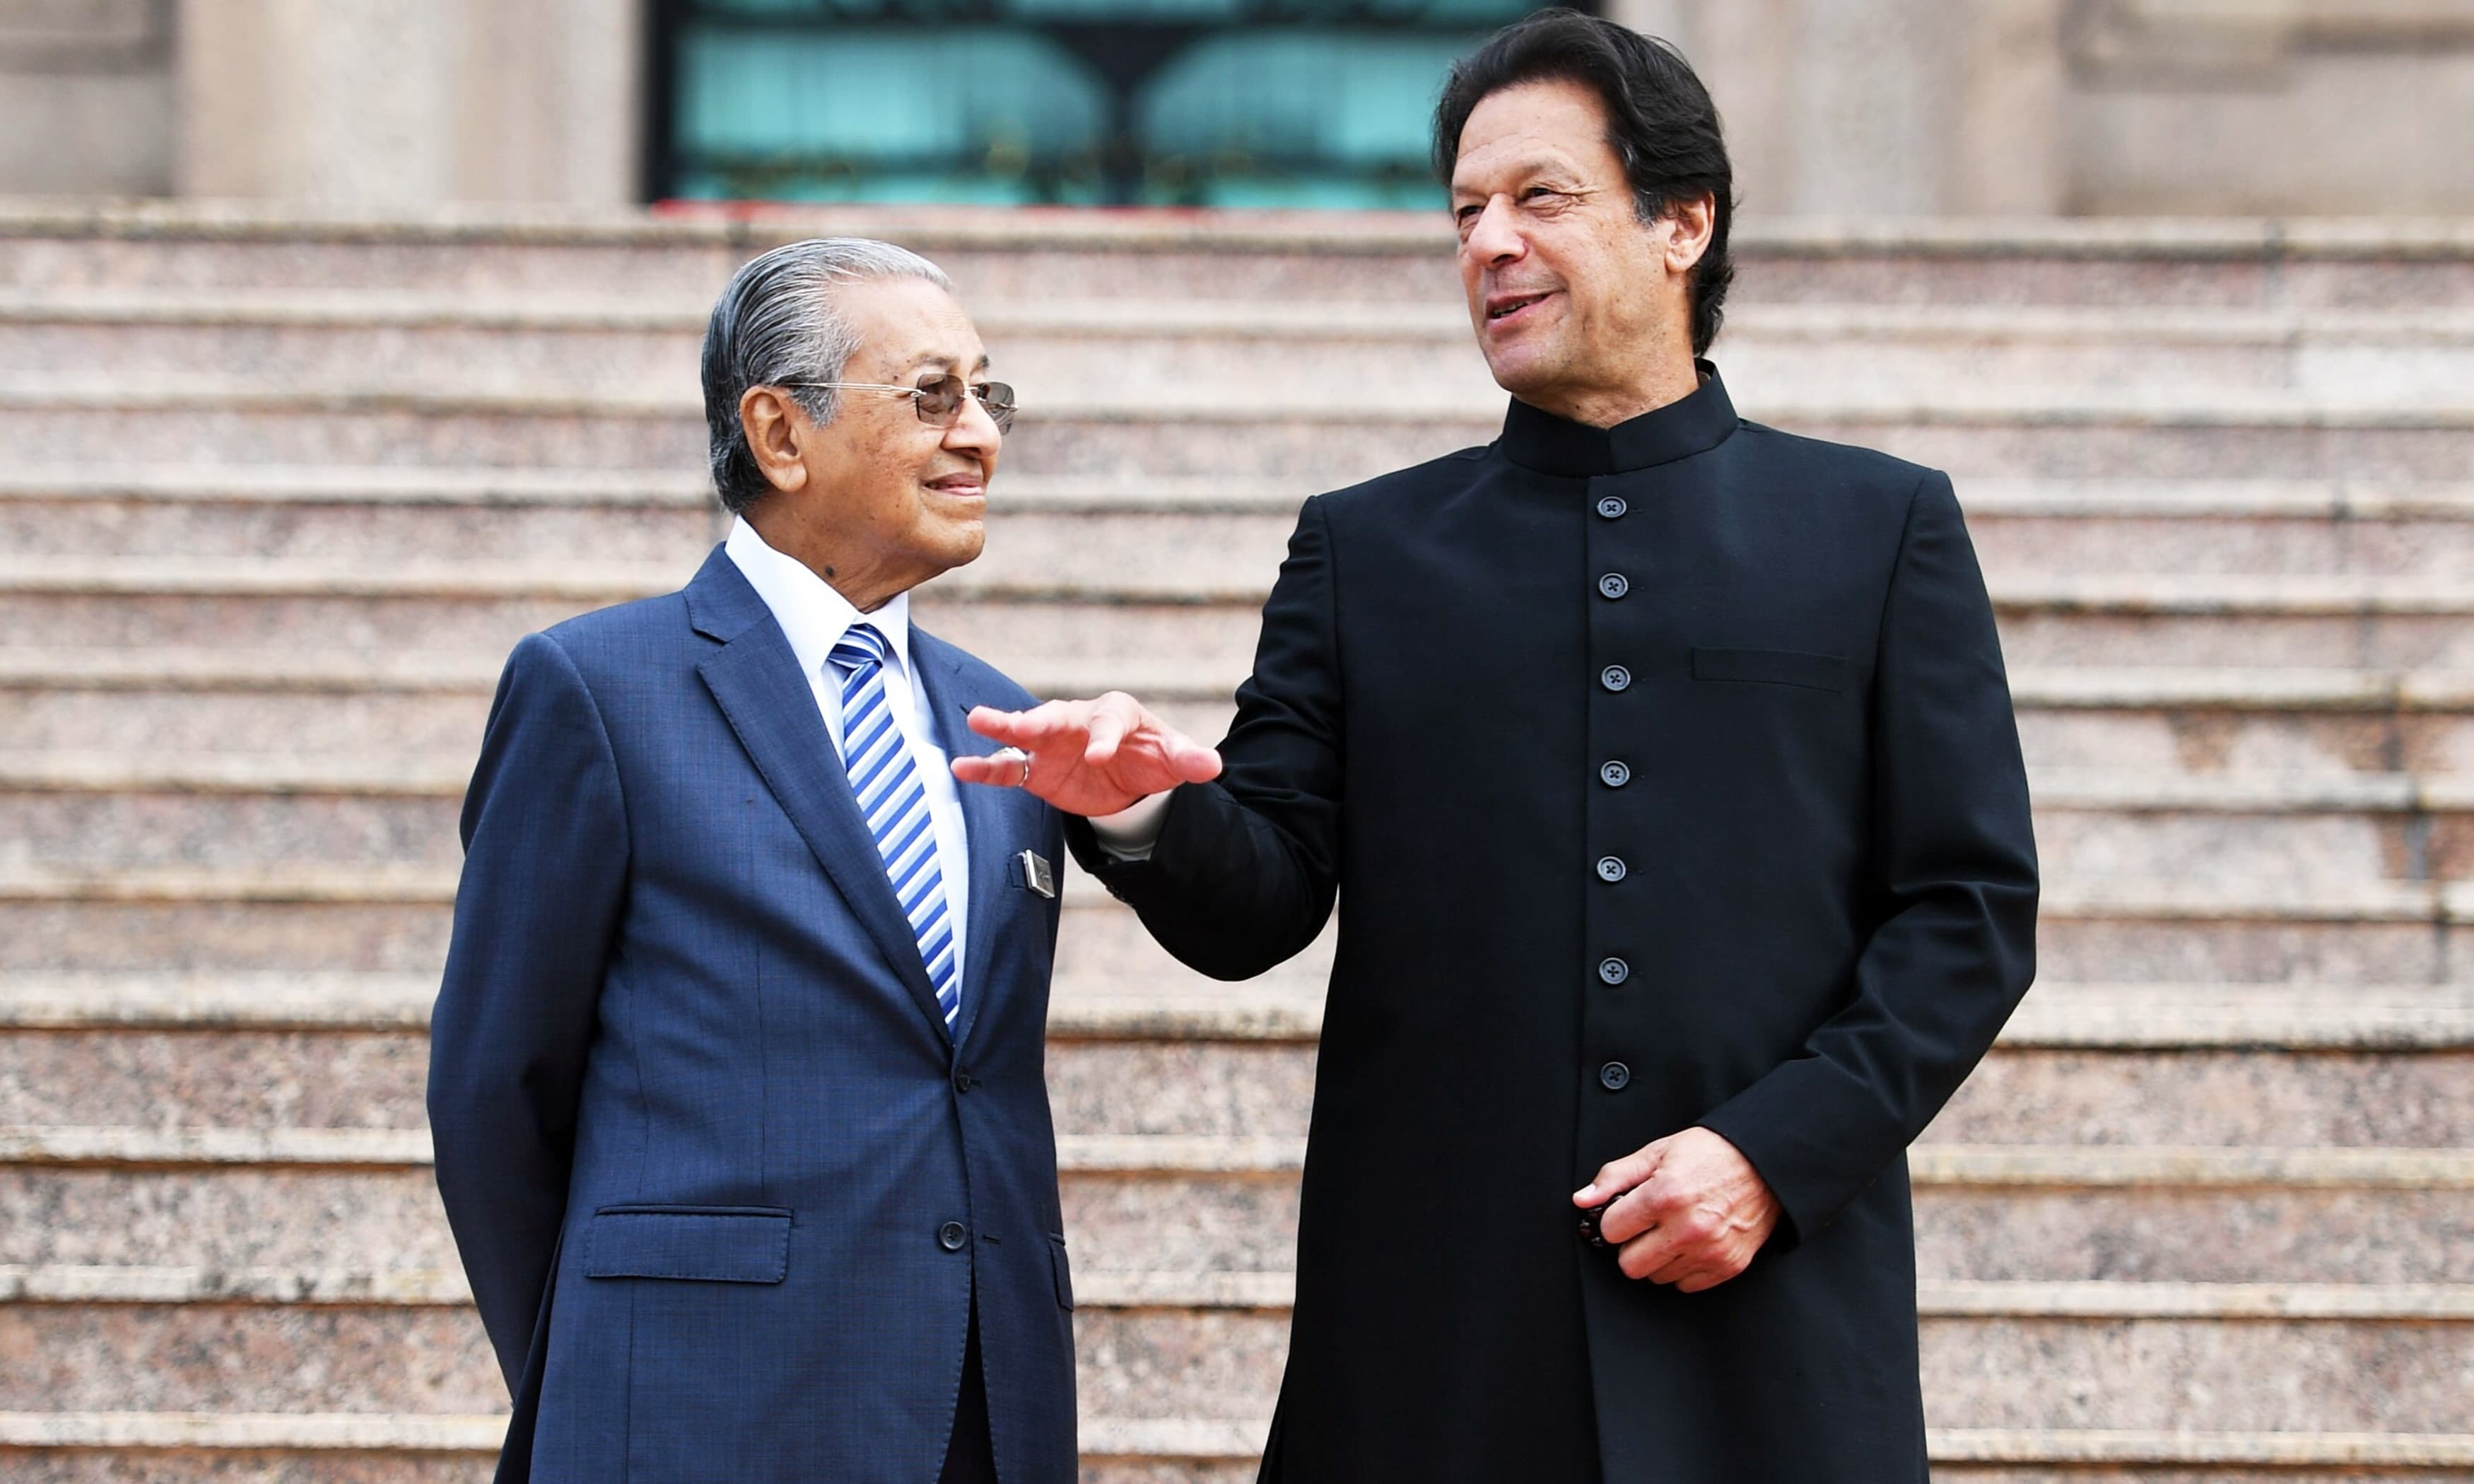 Malaysia's PM Mahathir Mohamad listens to PM Imran Khan during a welcoming ceremony at the prime minister's office in Putrajaya in November 2018. — AFP